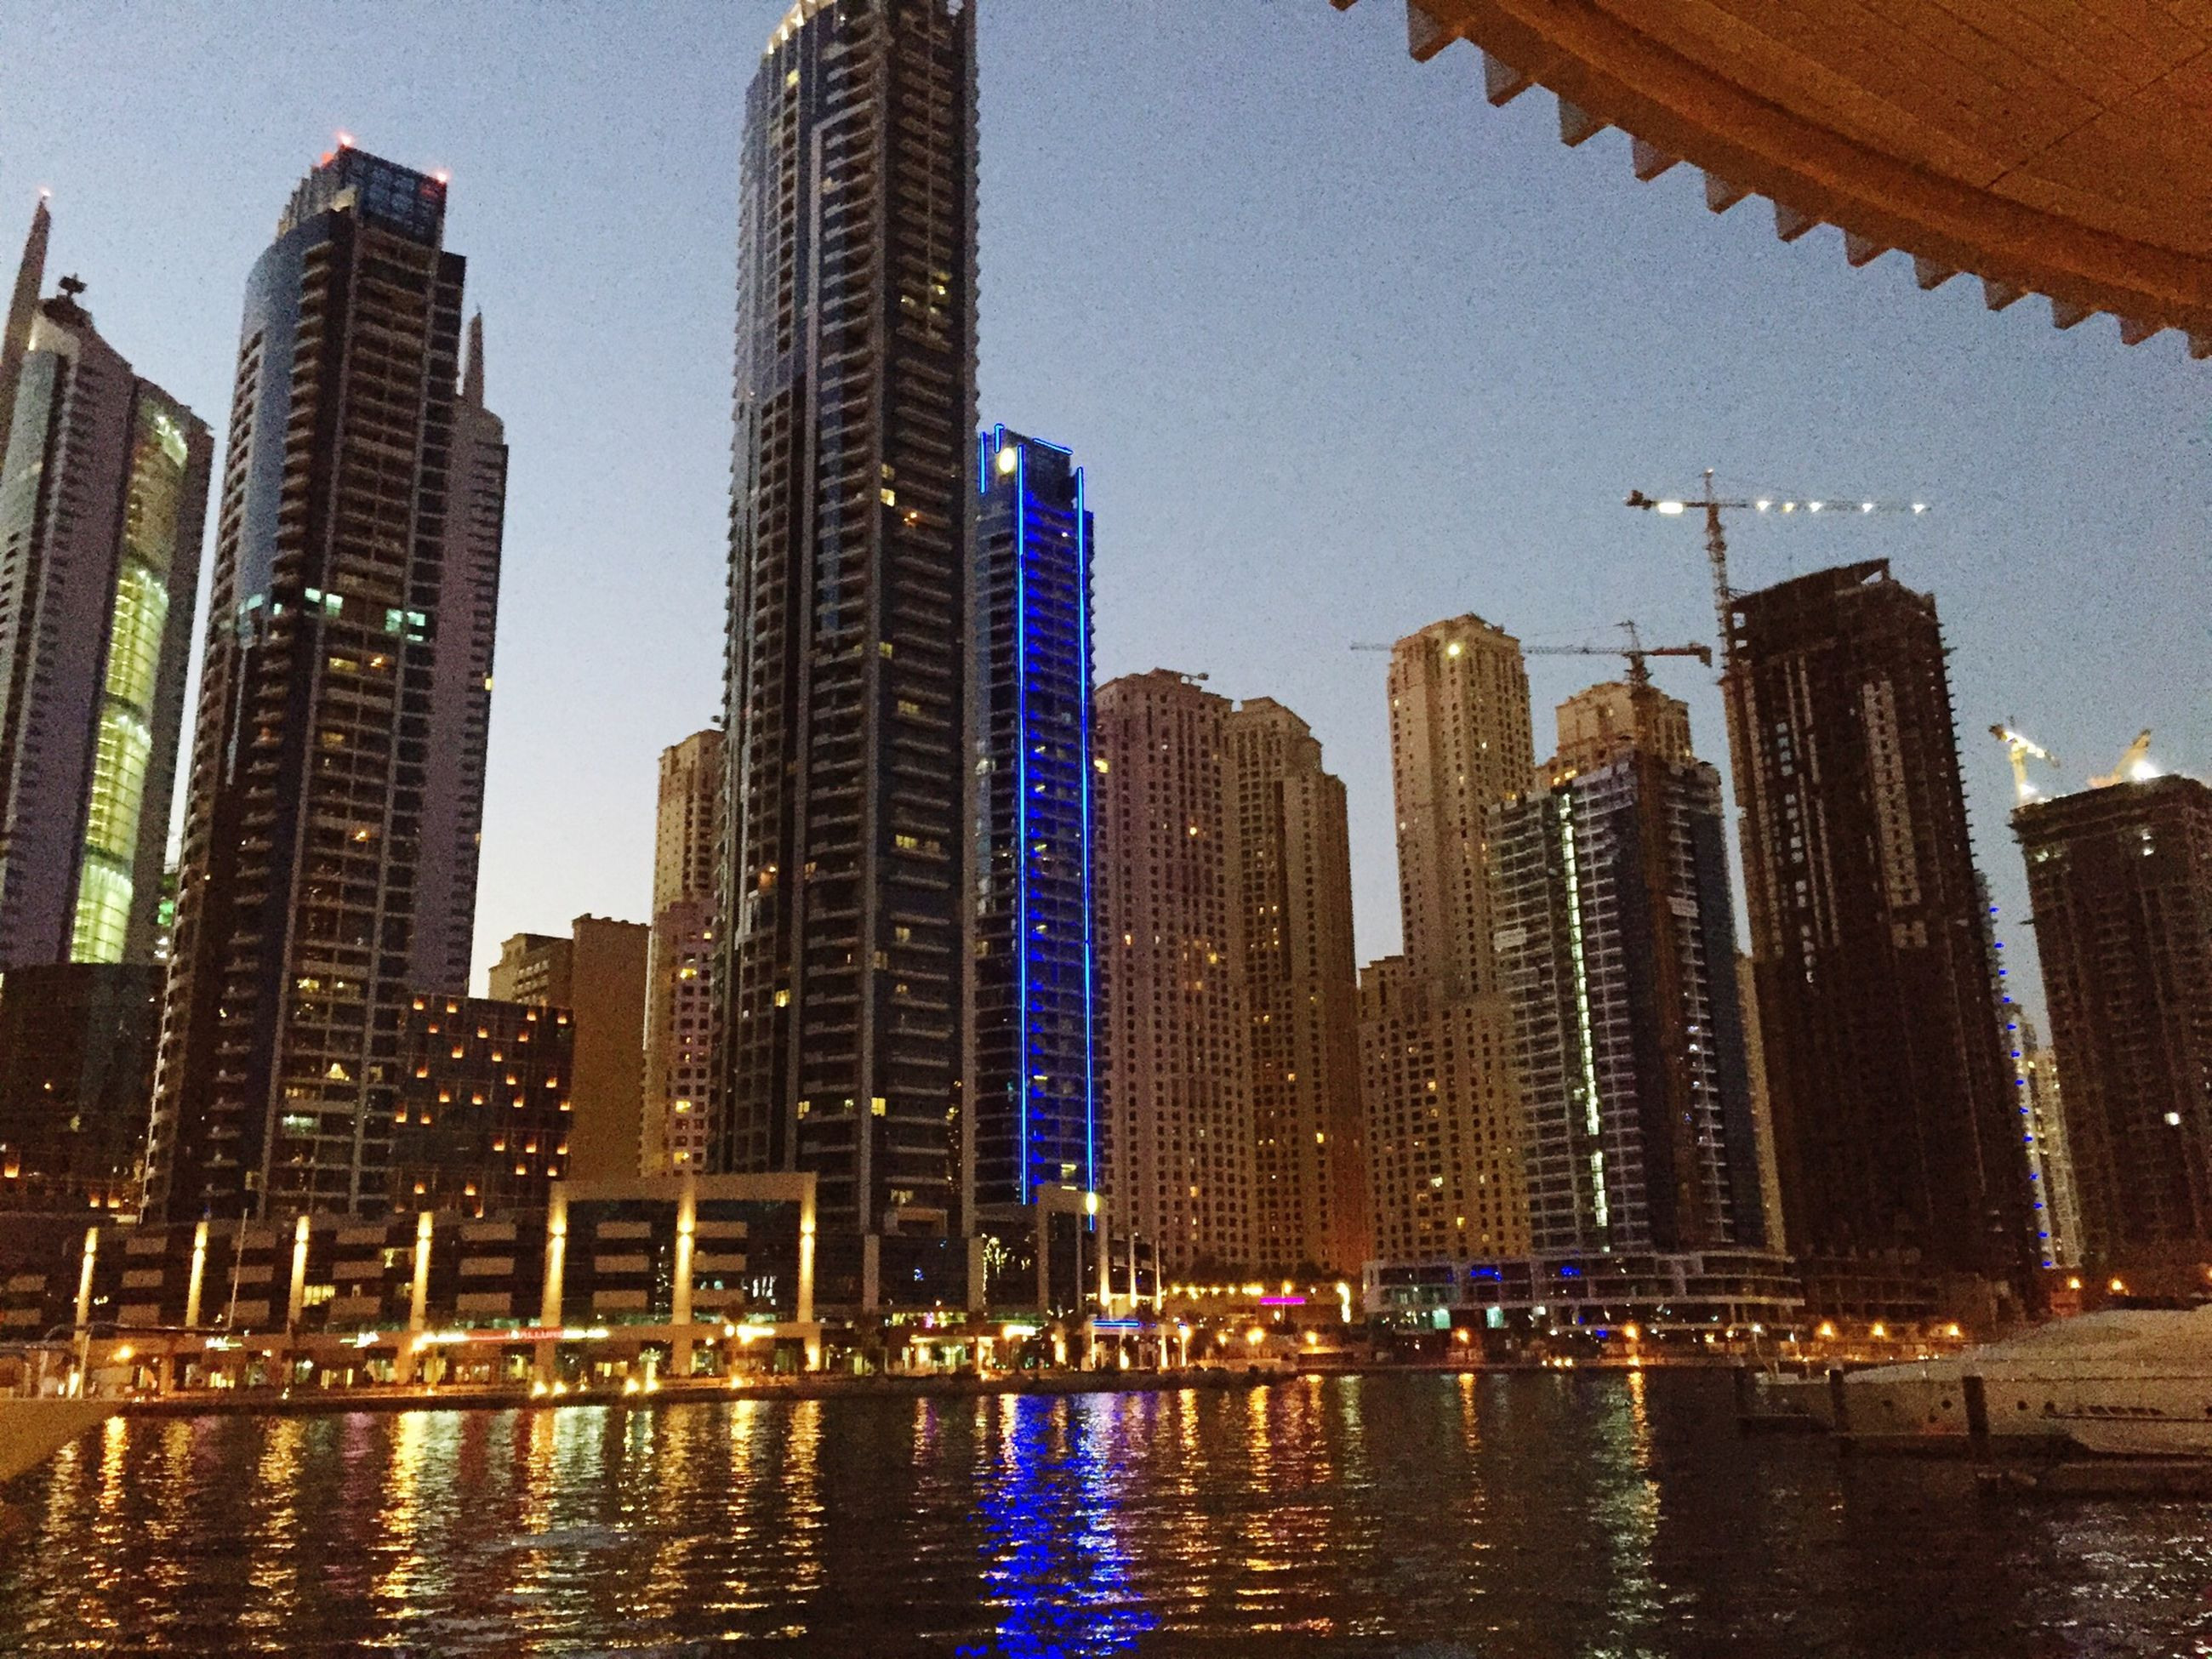 building exterior, architecture, water, built structure, city, skyscraper, waterfront, reflection, modern, office building, tall - high, urban skyline, cityscape, financial district, tower, clear sky, illuminated, building, city life, river